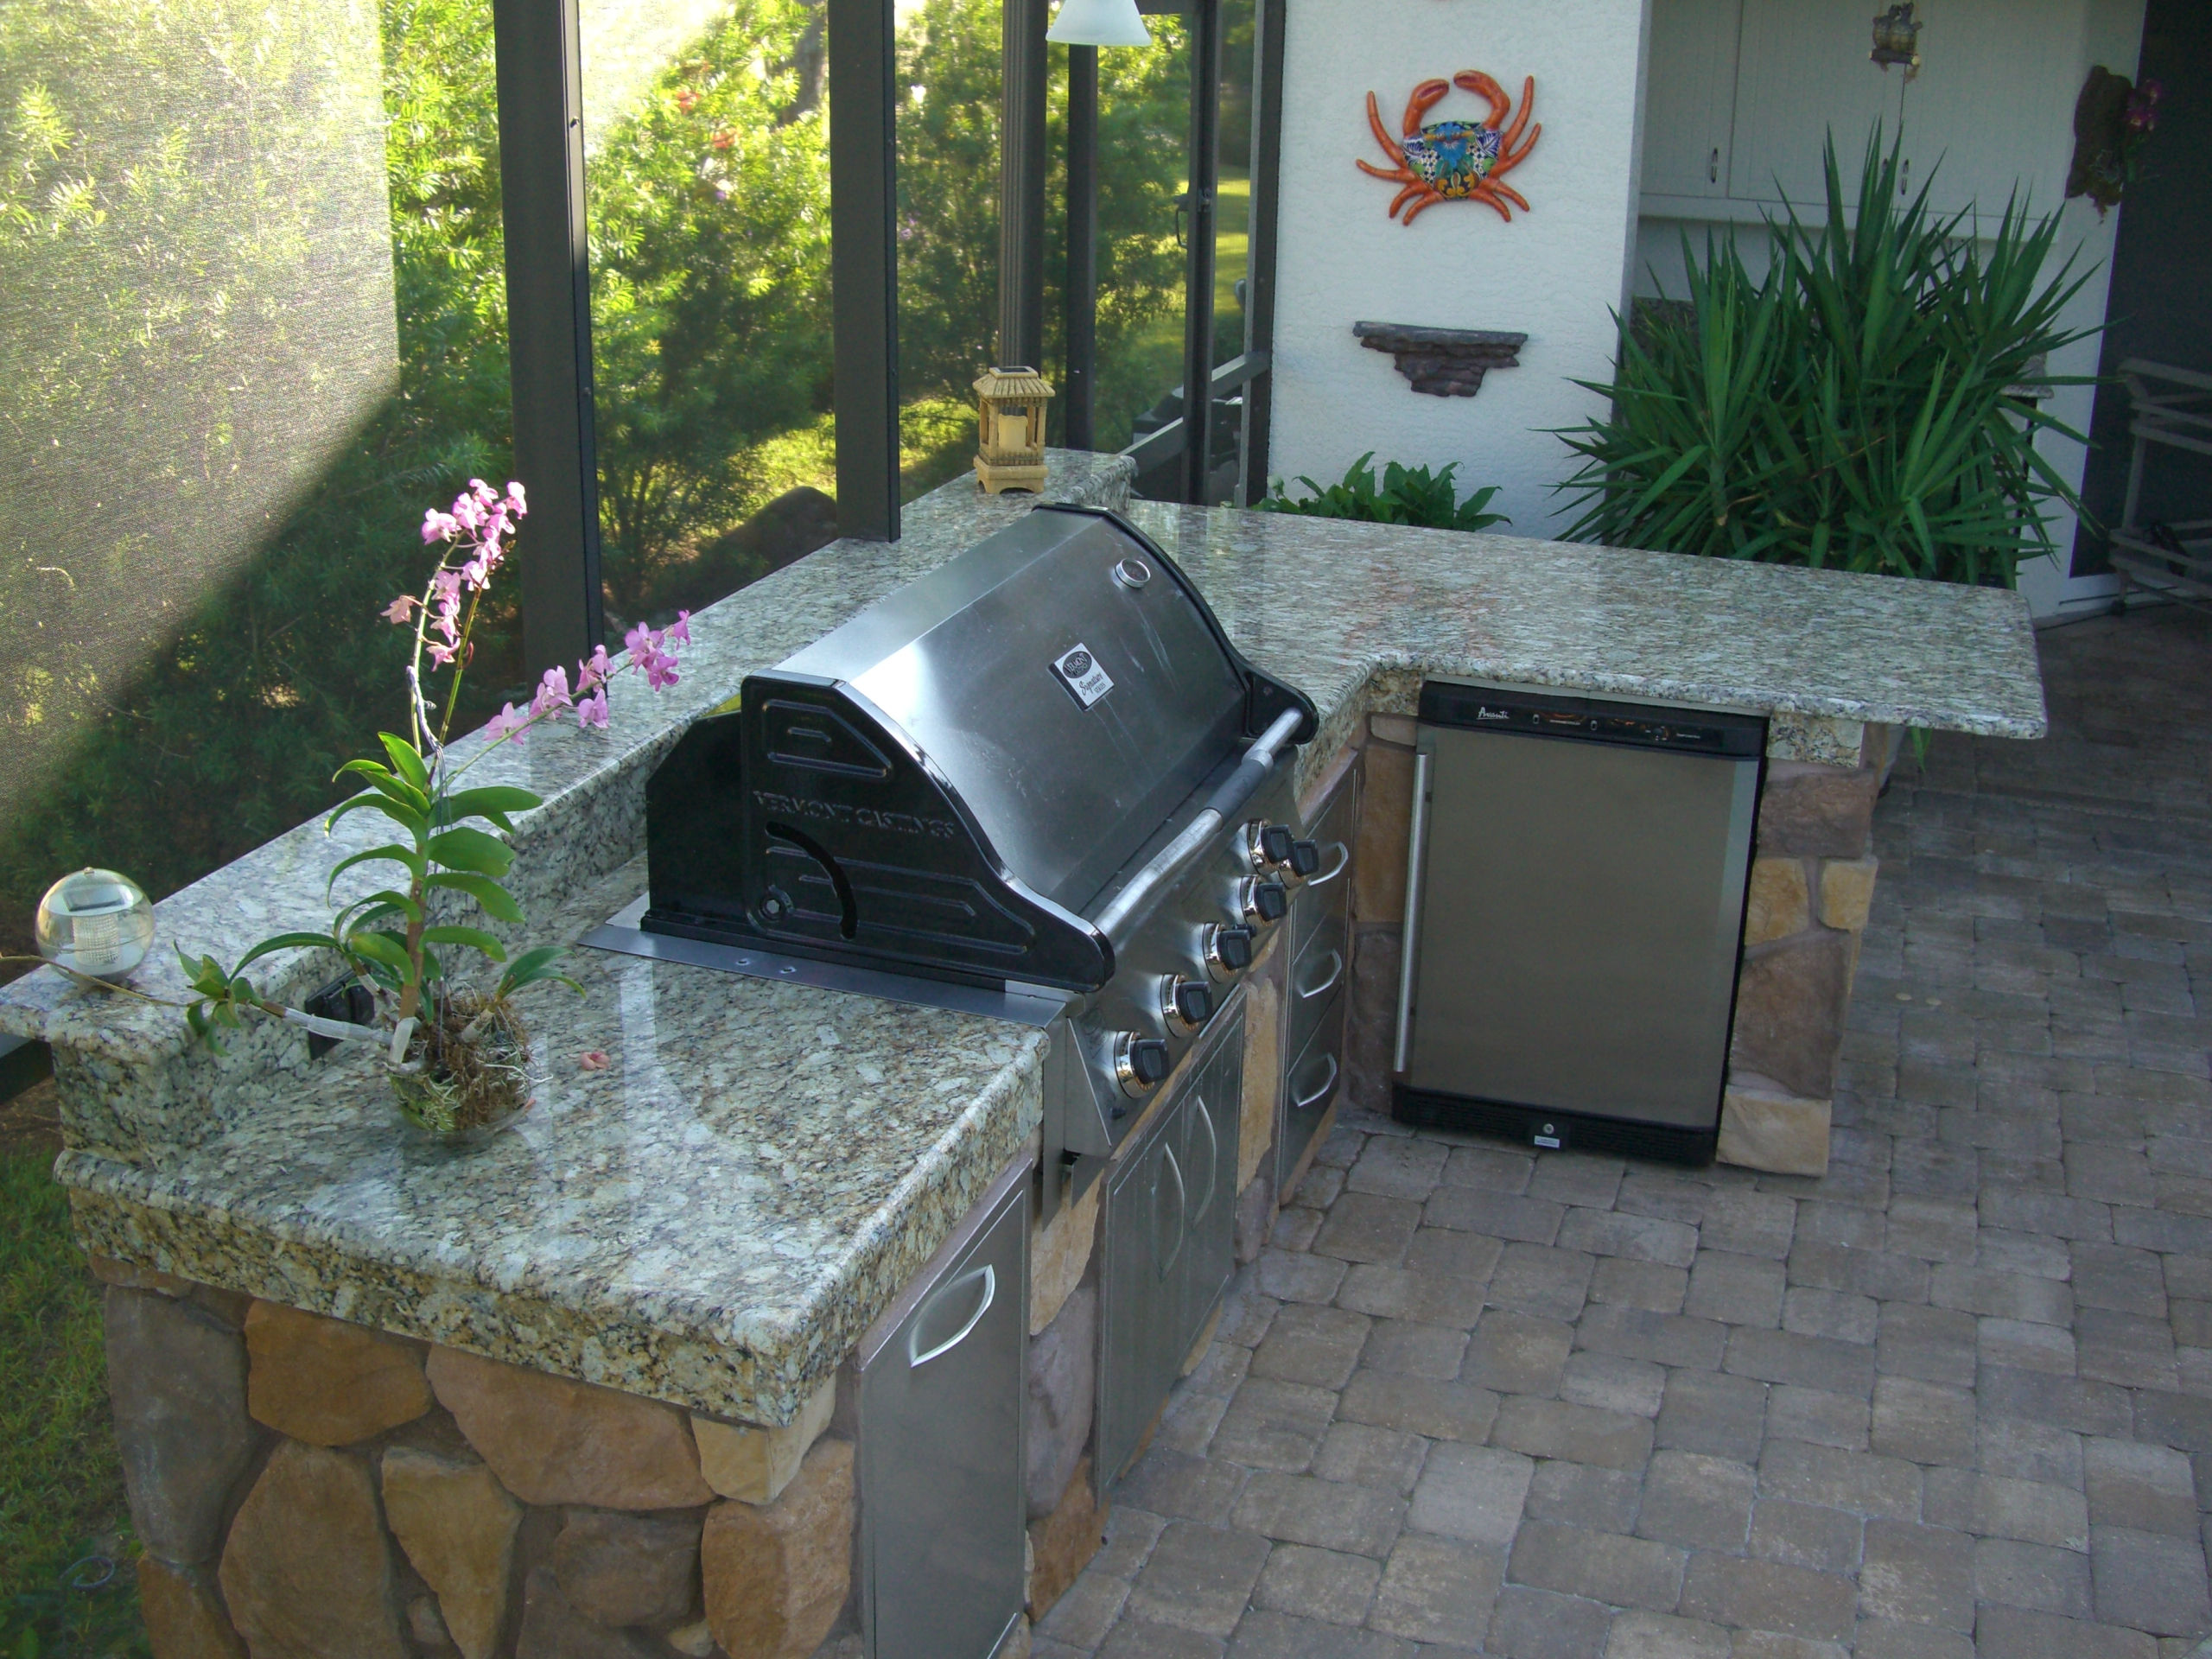 Outdoor kitchen with grill & fridge